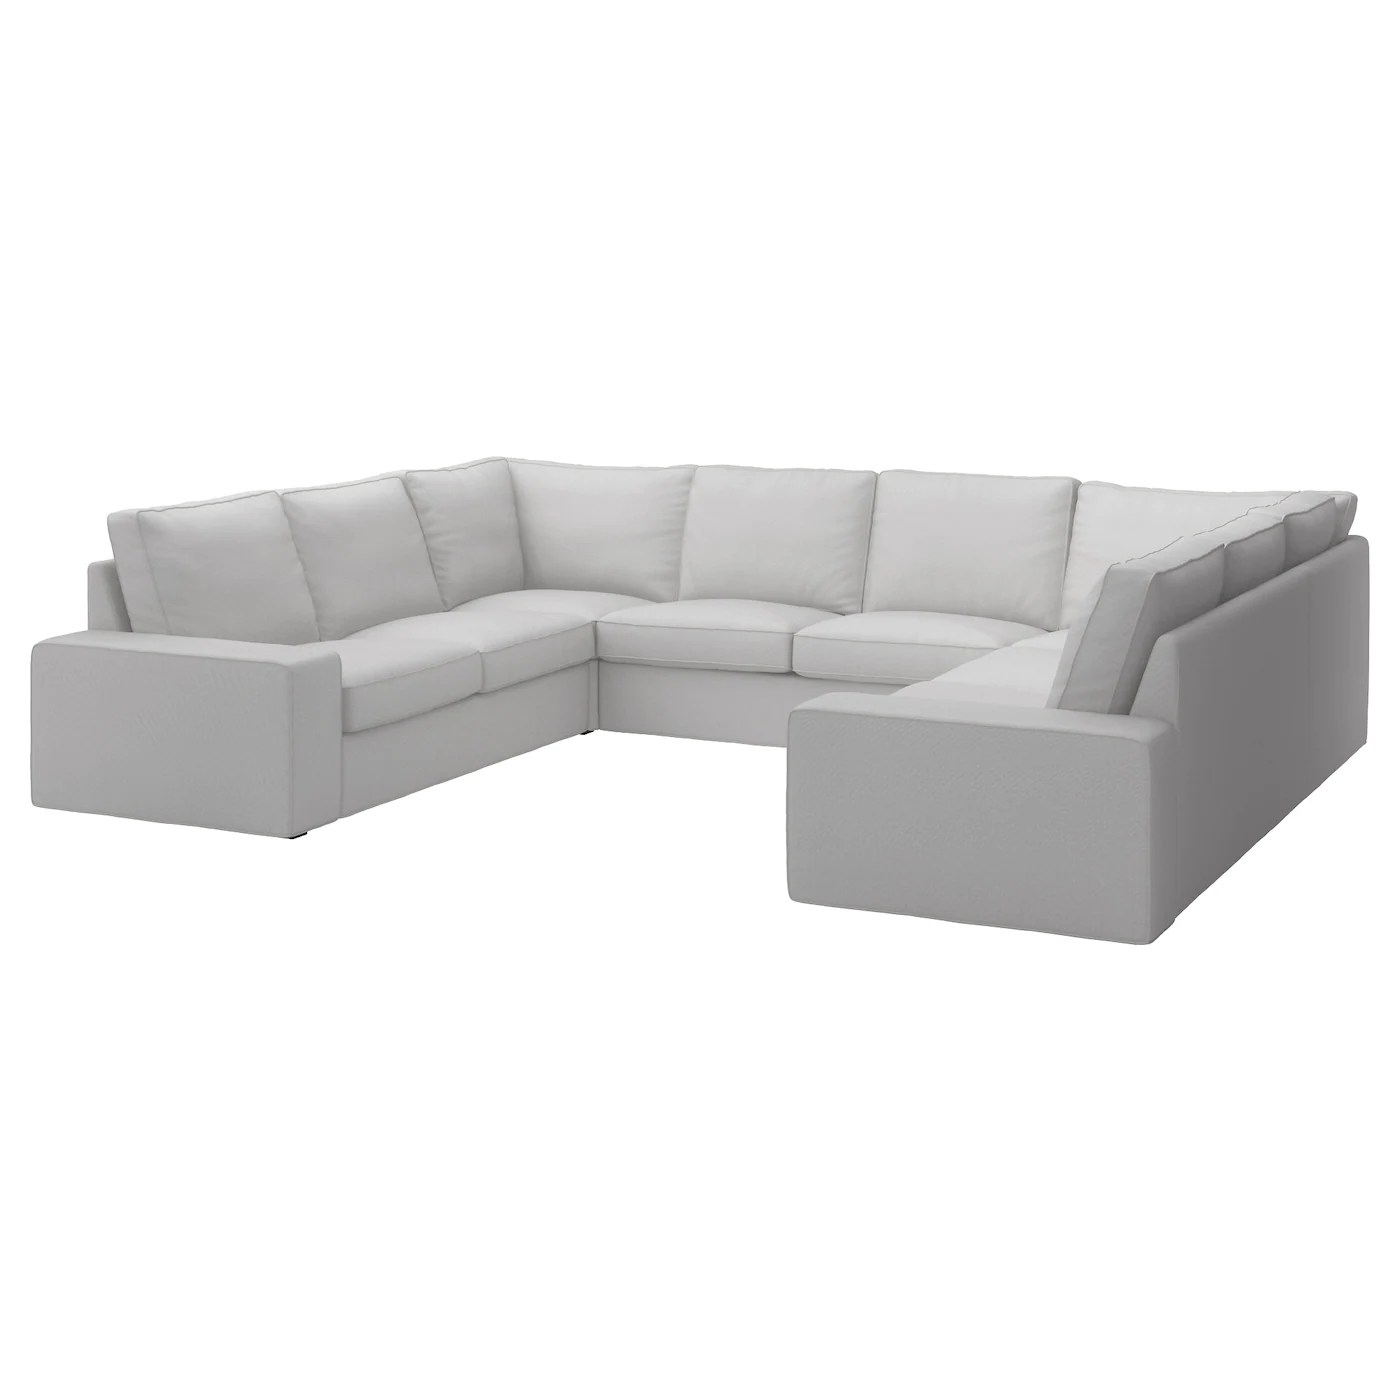 Bettsofa Ikea Kivik U Shaped Sofa 6 Seat Ramna Light Grey